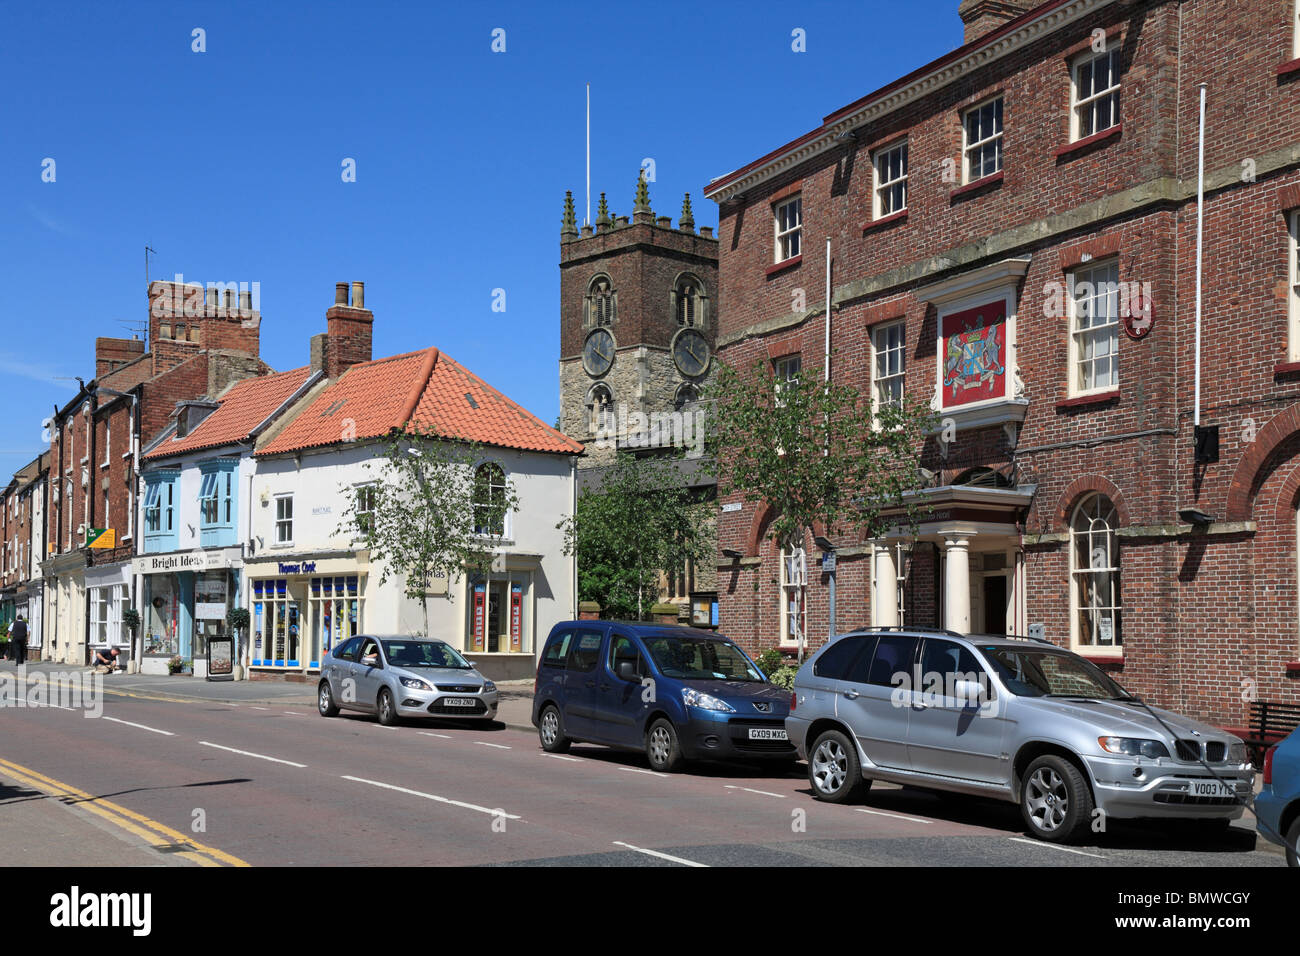 High Street, Market Place and Londesborough Arms, Market Weighton, East Riding of Yorkshire, England, UK. - Stock Image